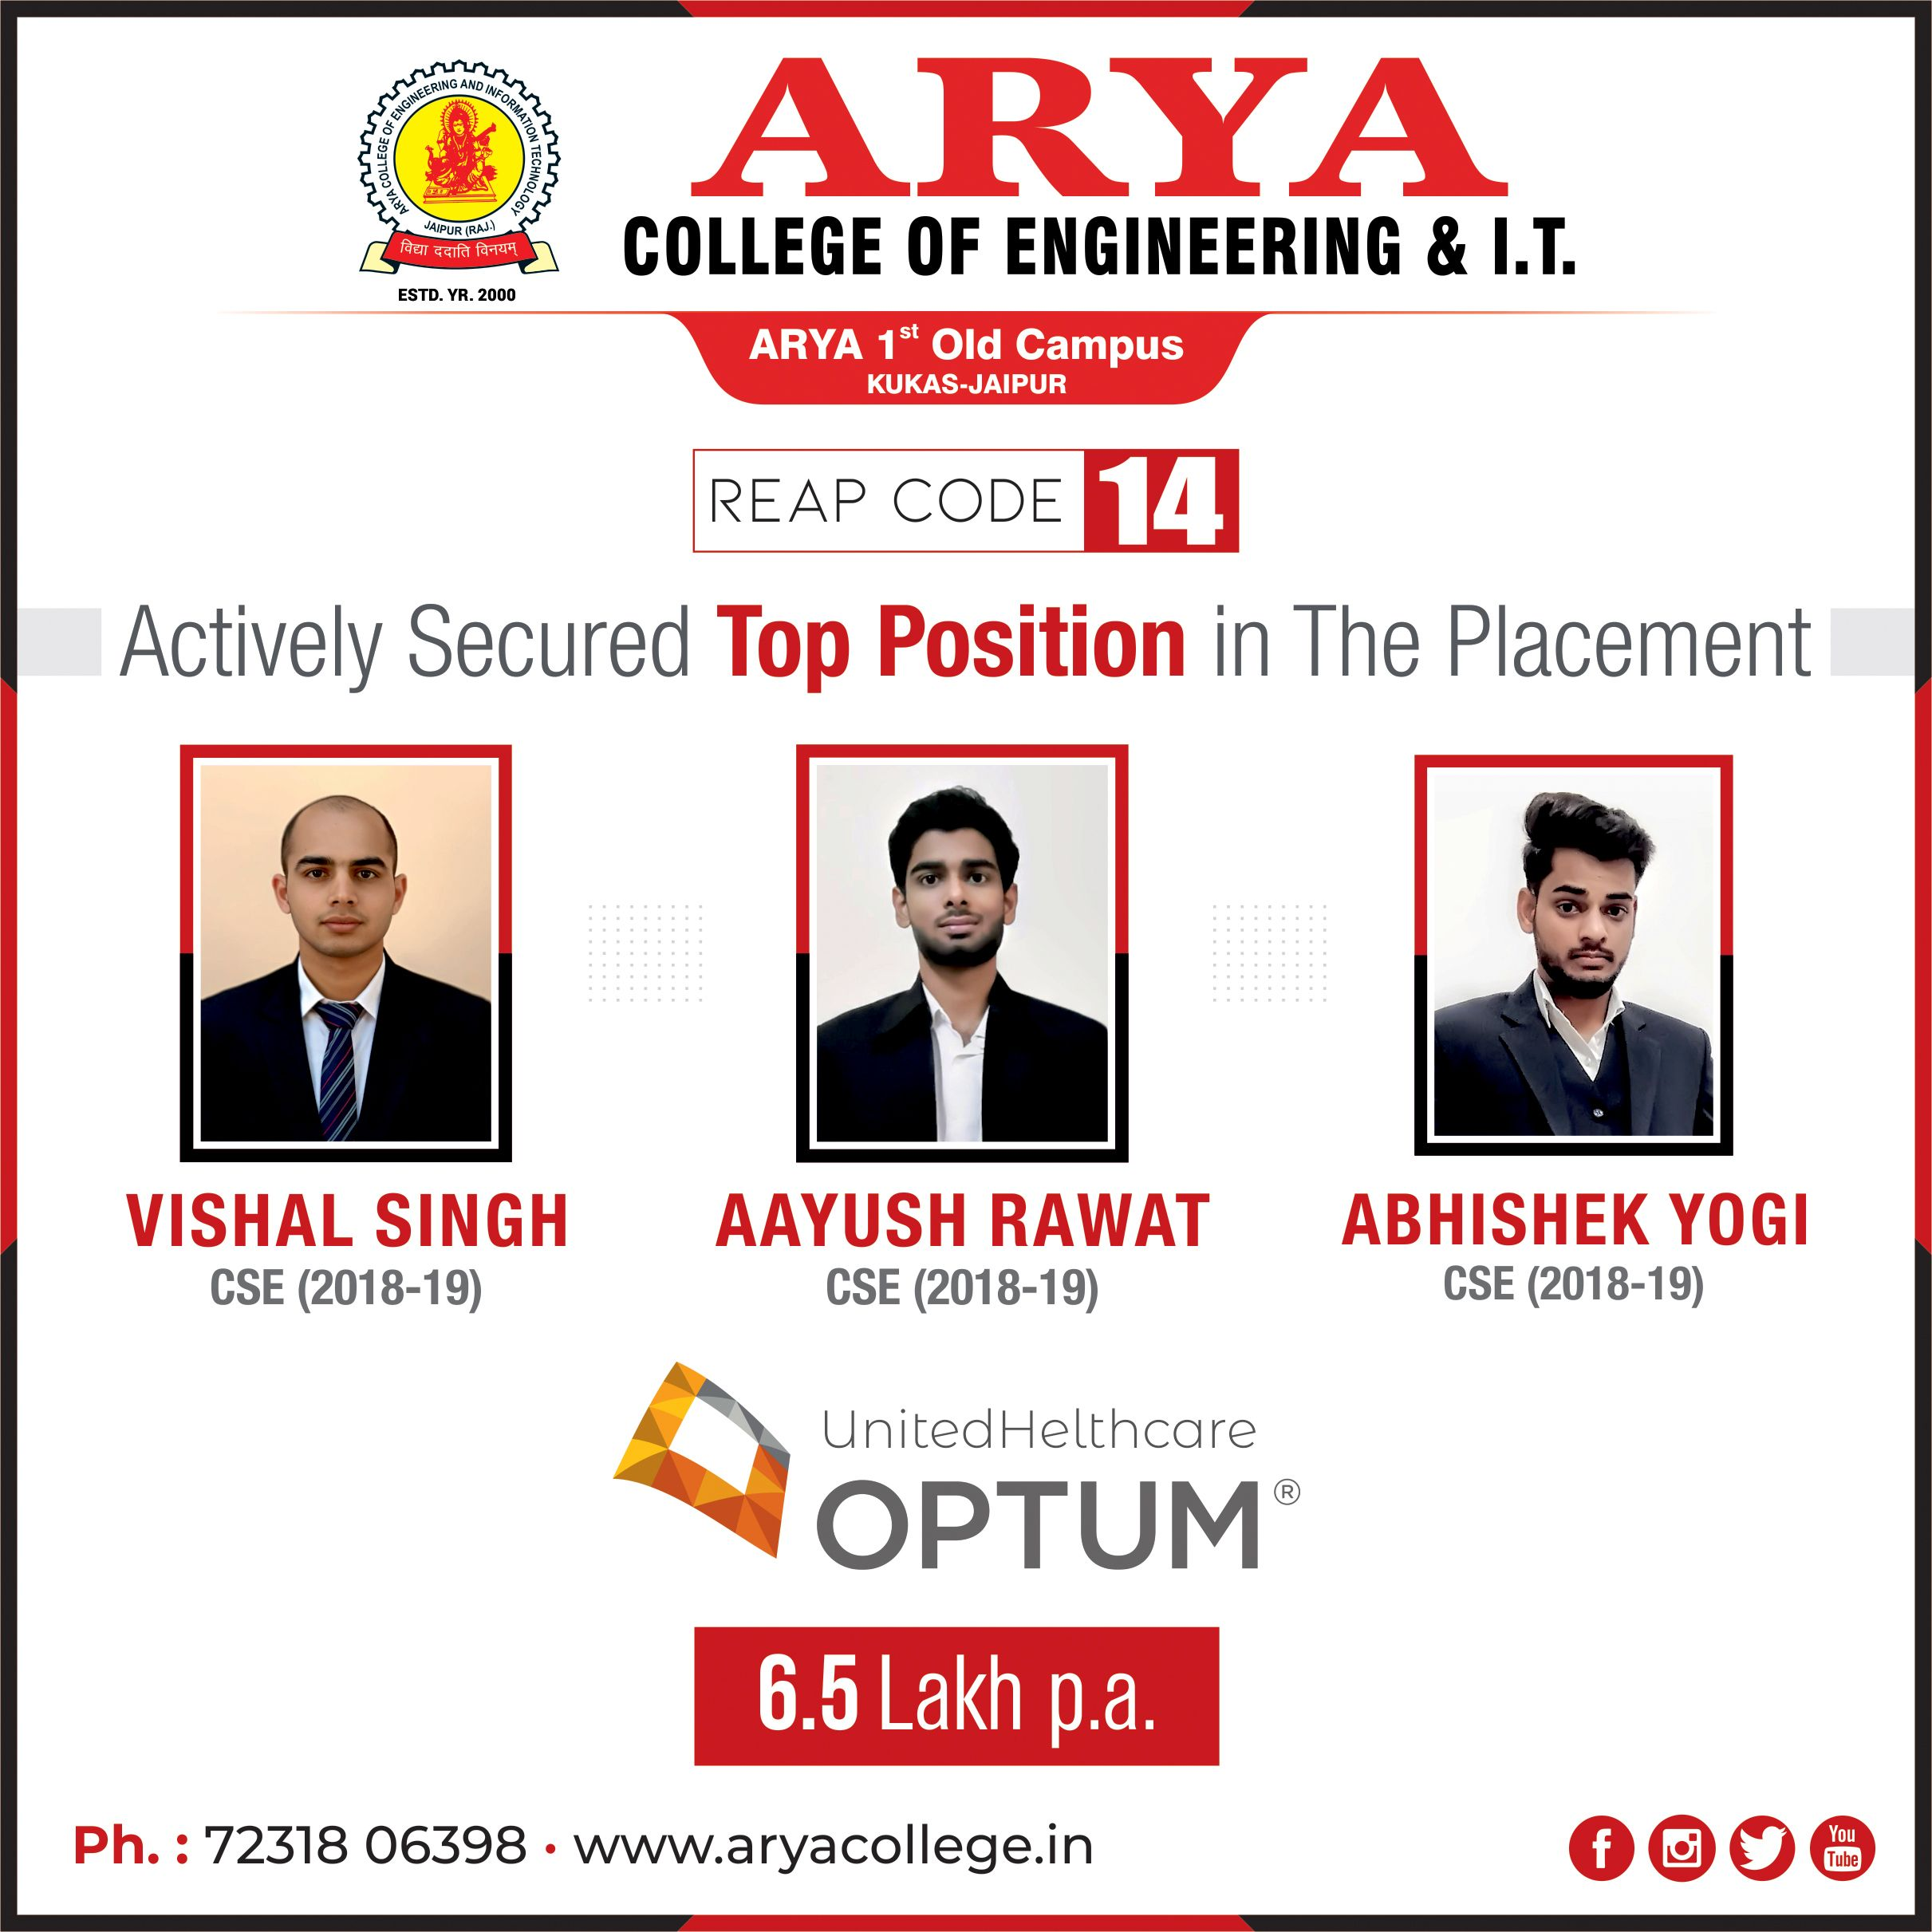 Arya College Students Placed in United Healthcare Optum